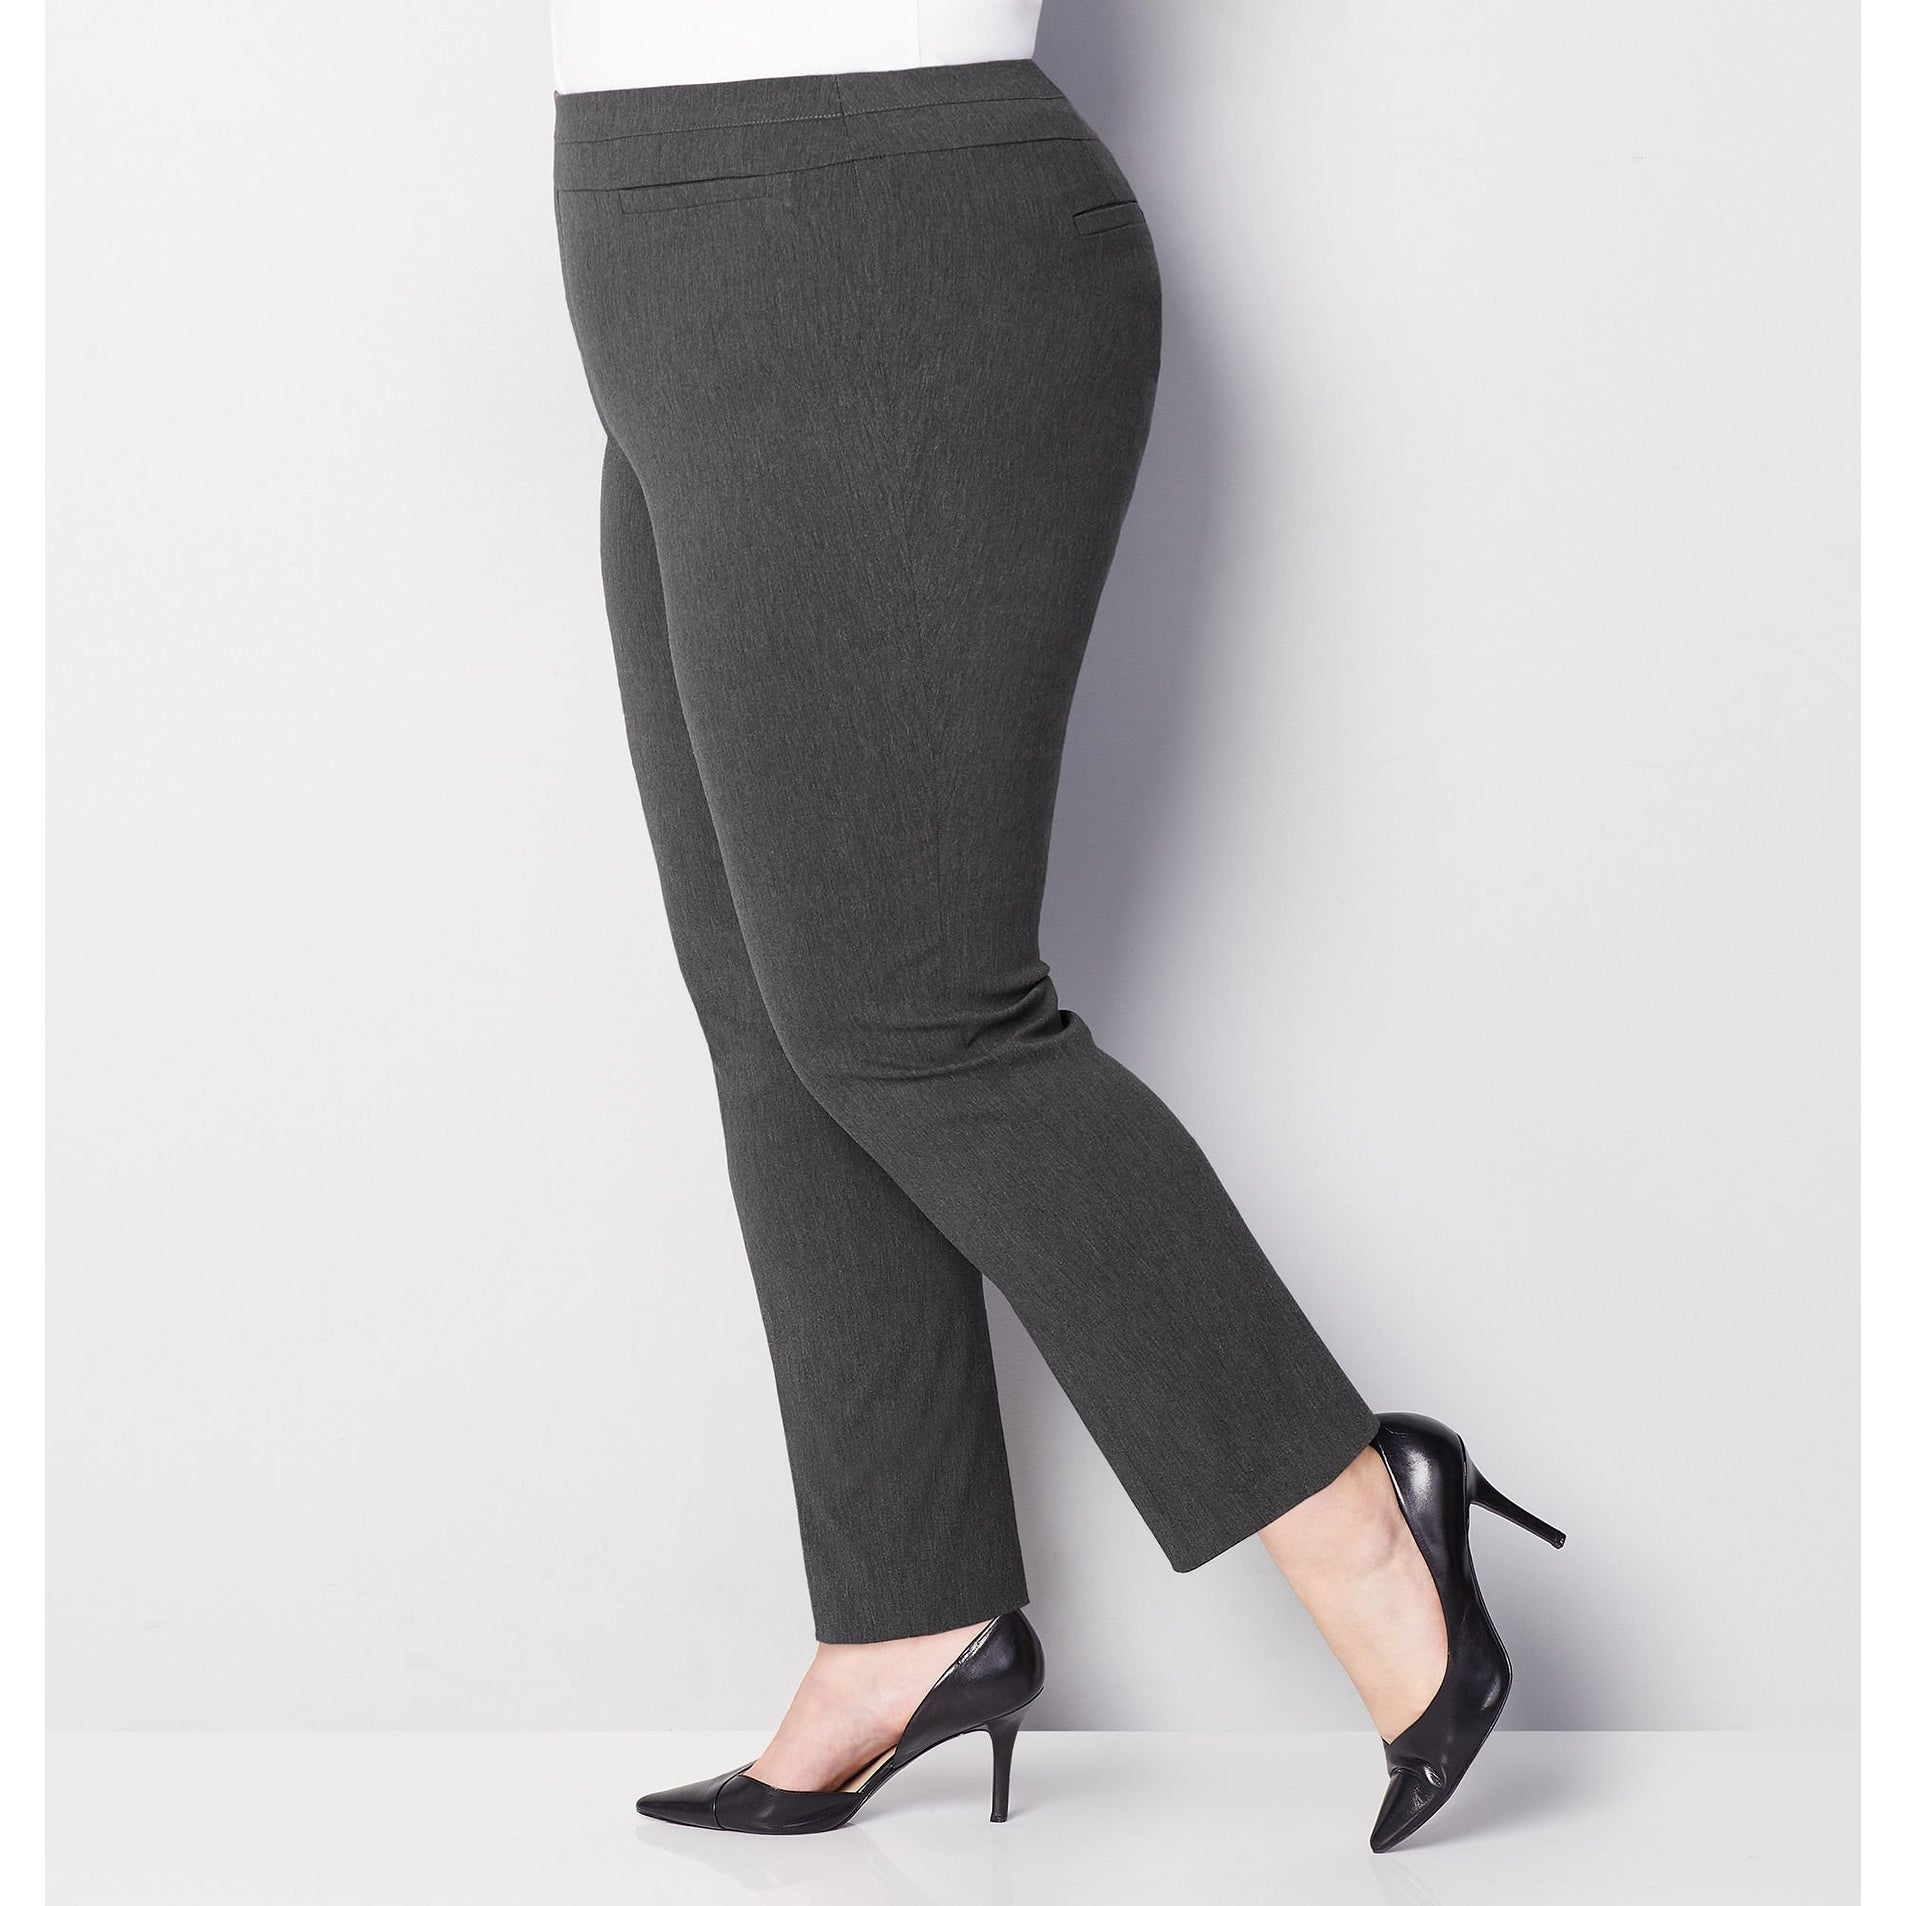 5a7dd1c13 Shop AVENUE Women s Super Stretch Welt Pocket Pull-On Pant in Grey - Dark  Grey - Free Shipping On Orders Over  45 - Overstock - 27421961